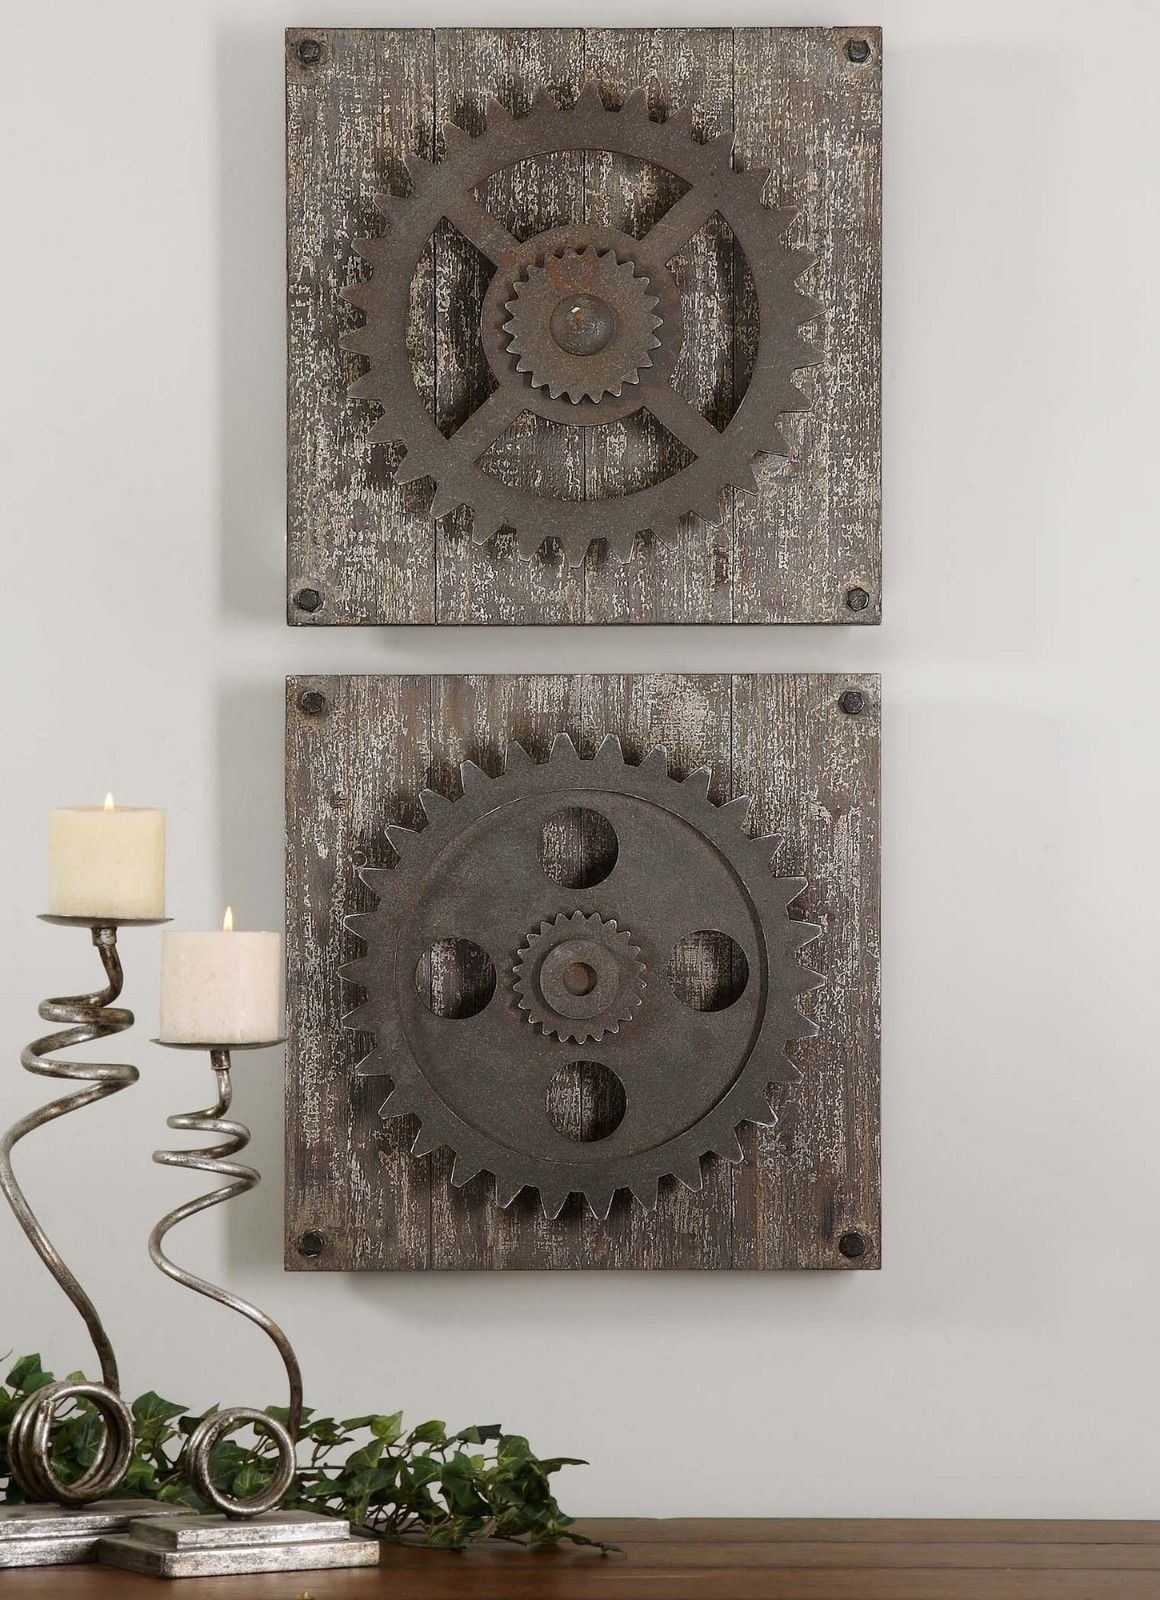 Urban Industrial Loft Steampunk Decor Rusty Gears Cogs 3D Wall Art Within Most Up To Date Steampunk Wall Art (View 8 of 20)